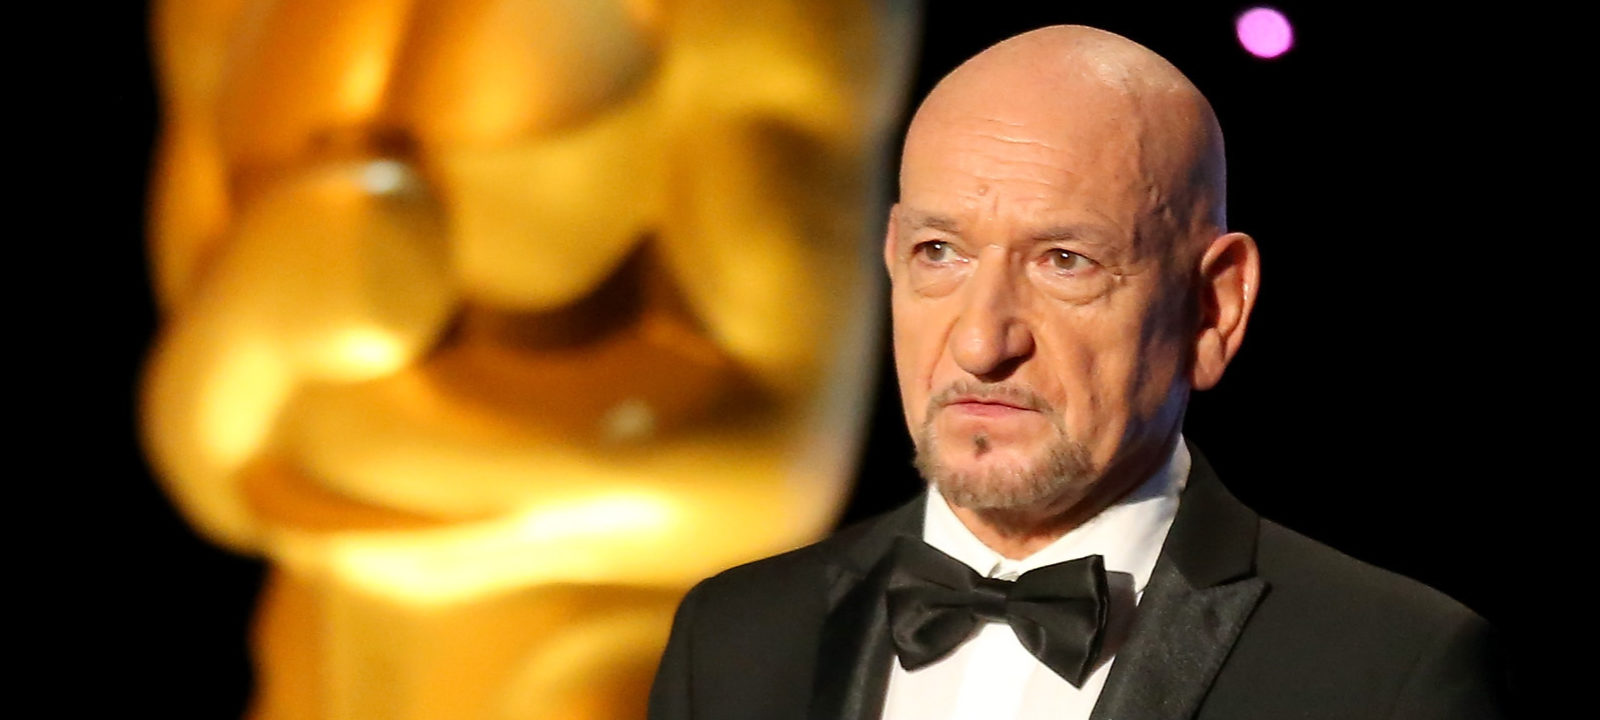 Actor Ben Kingsley speaks onstage during the Academy of Motion Picture Arts and Sciences' 8th annual Governors Awards at The Ray Dolby Ballroom at Hollywood & Highland Center on November 12, 2016 in Hollywood, California.